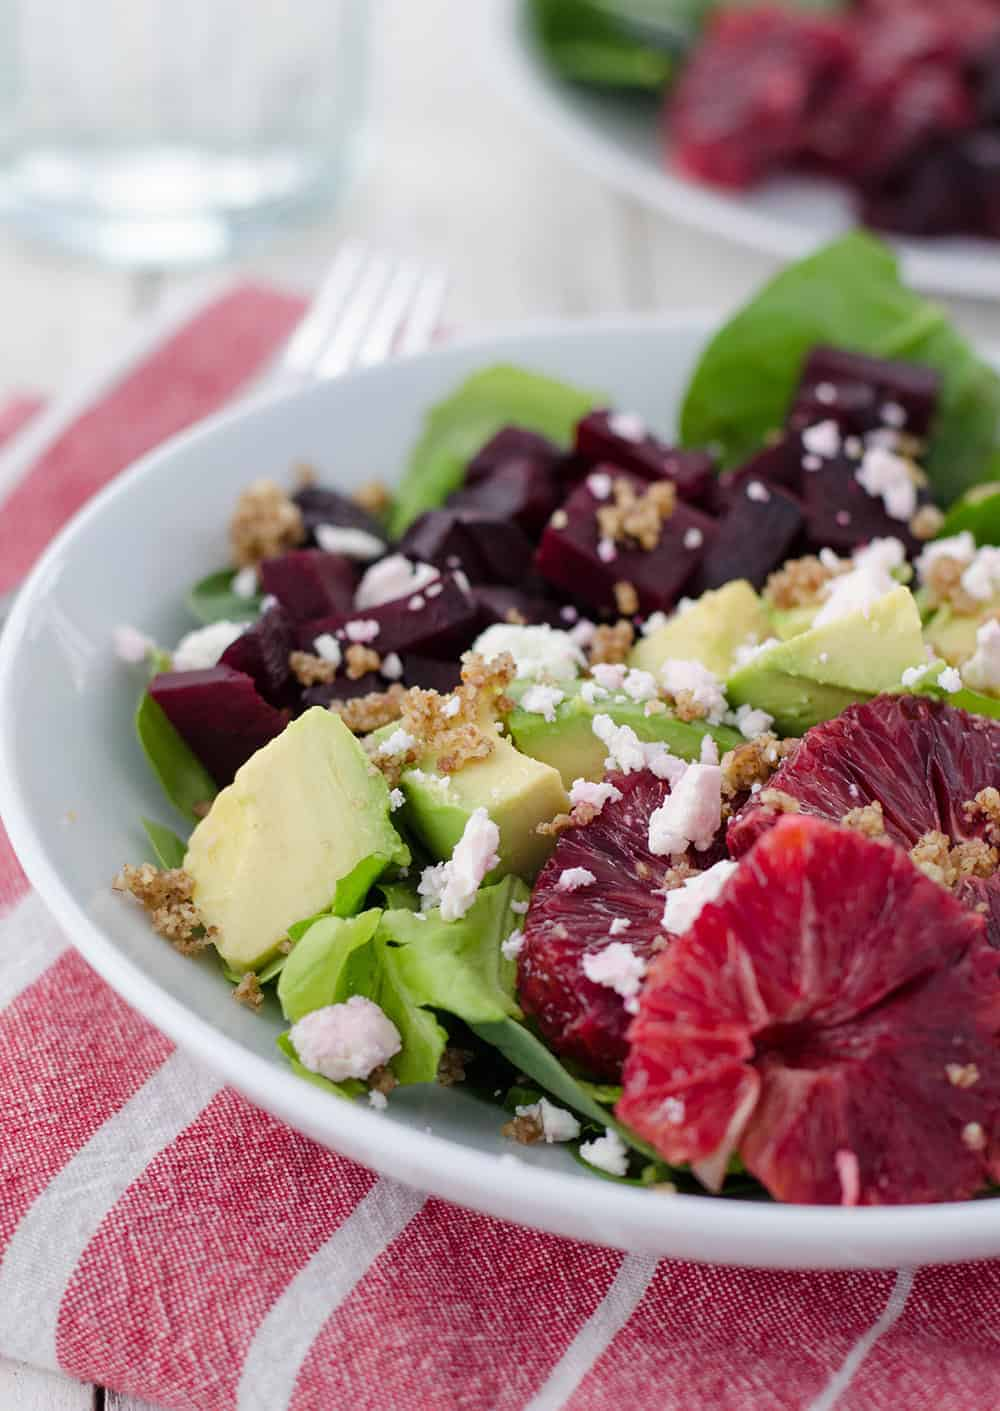 Blood Orange and Roasted Beet Salad with walnut dressing! This winter salad is so delicious, you've gotta try it! Vegetarian, easily vegan and gluten-free | www.delishknowledge.com